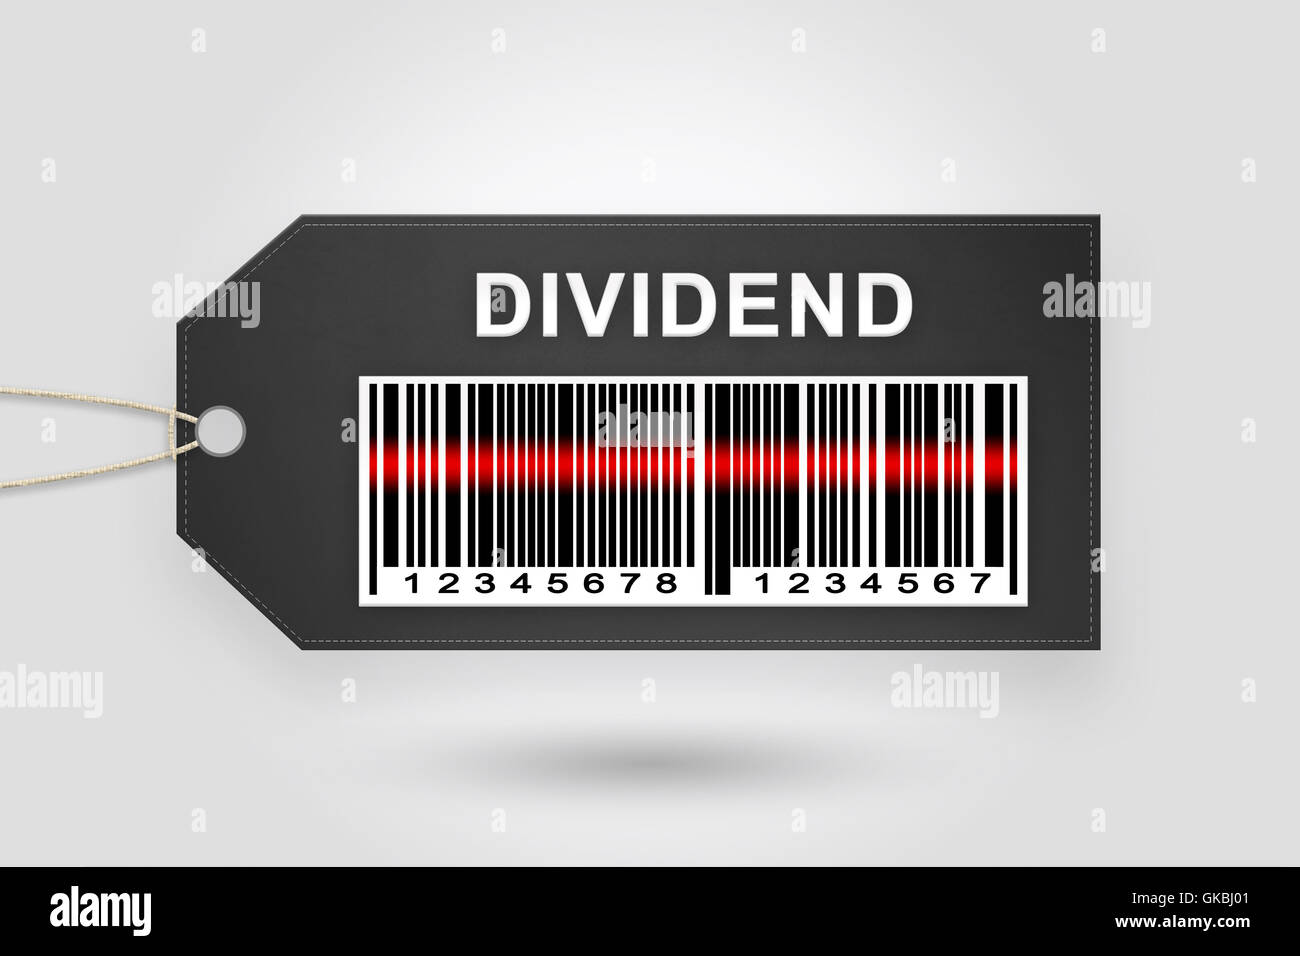 dividend price tag with barcode and grey radial gradient background - Stock Image